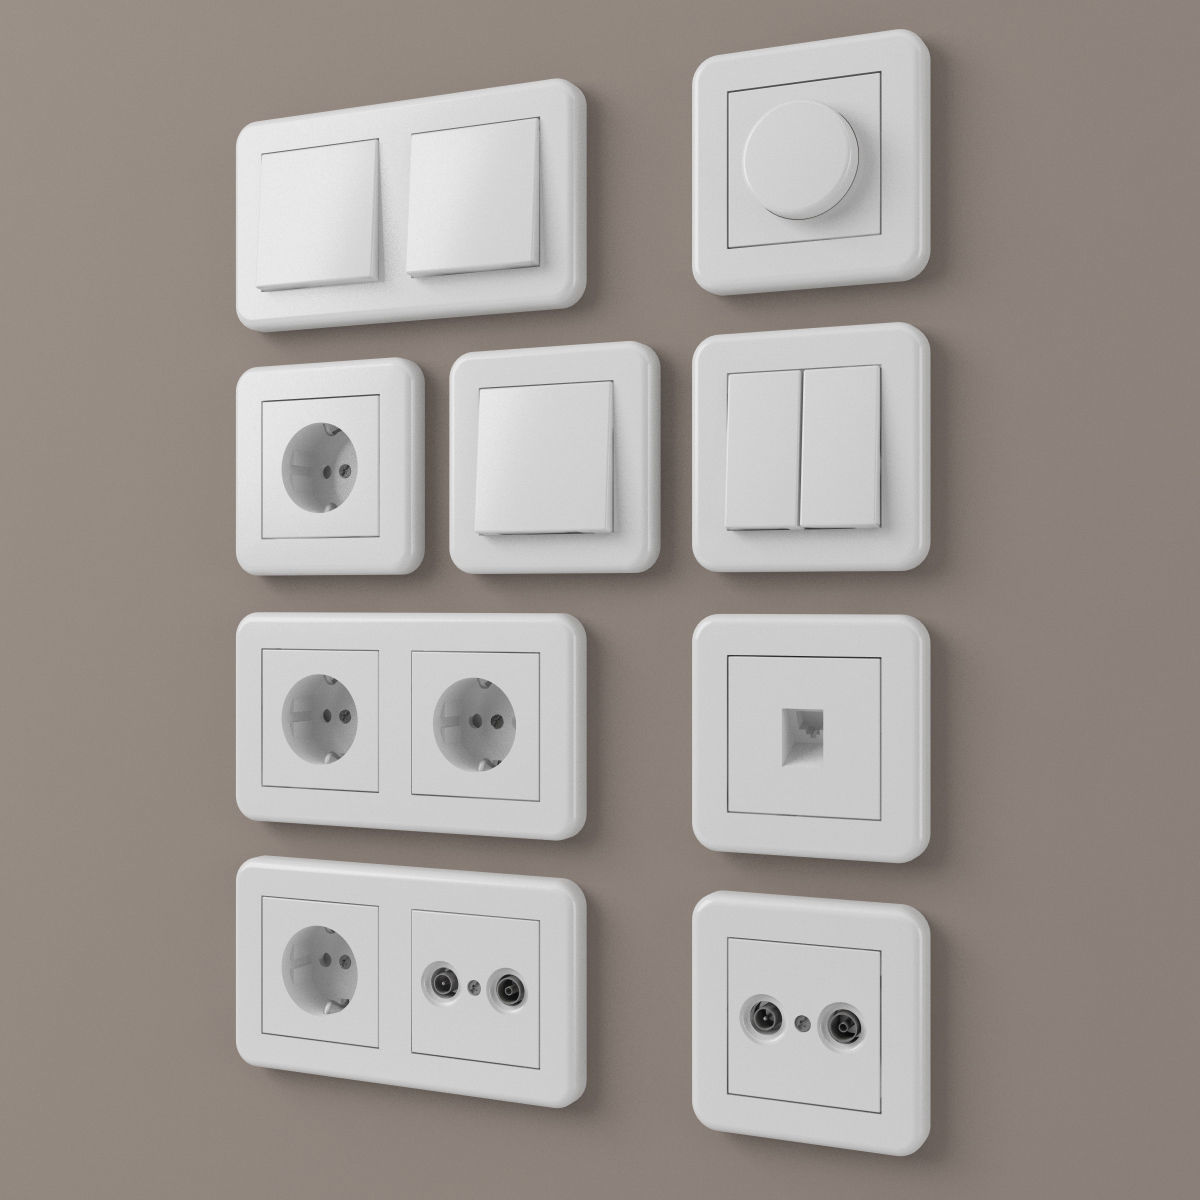 European outlets and light switches 2 - electrical